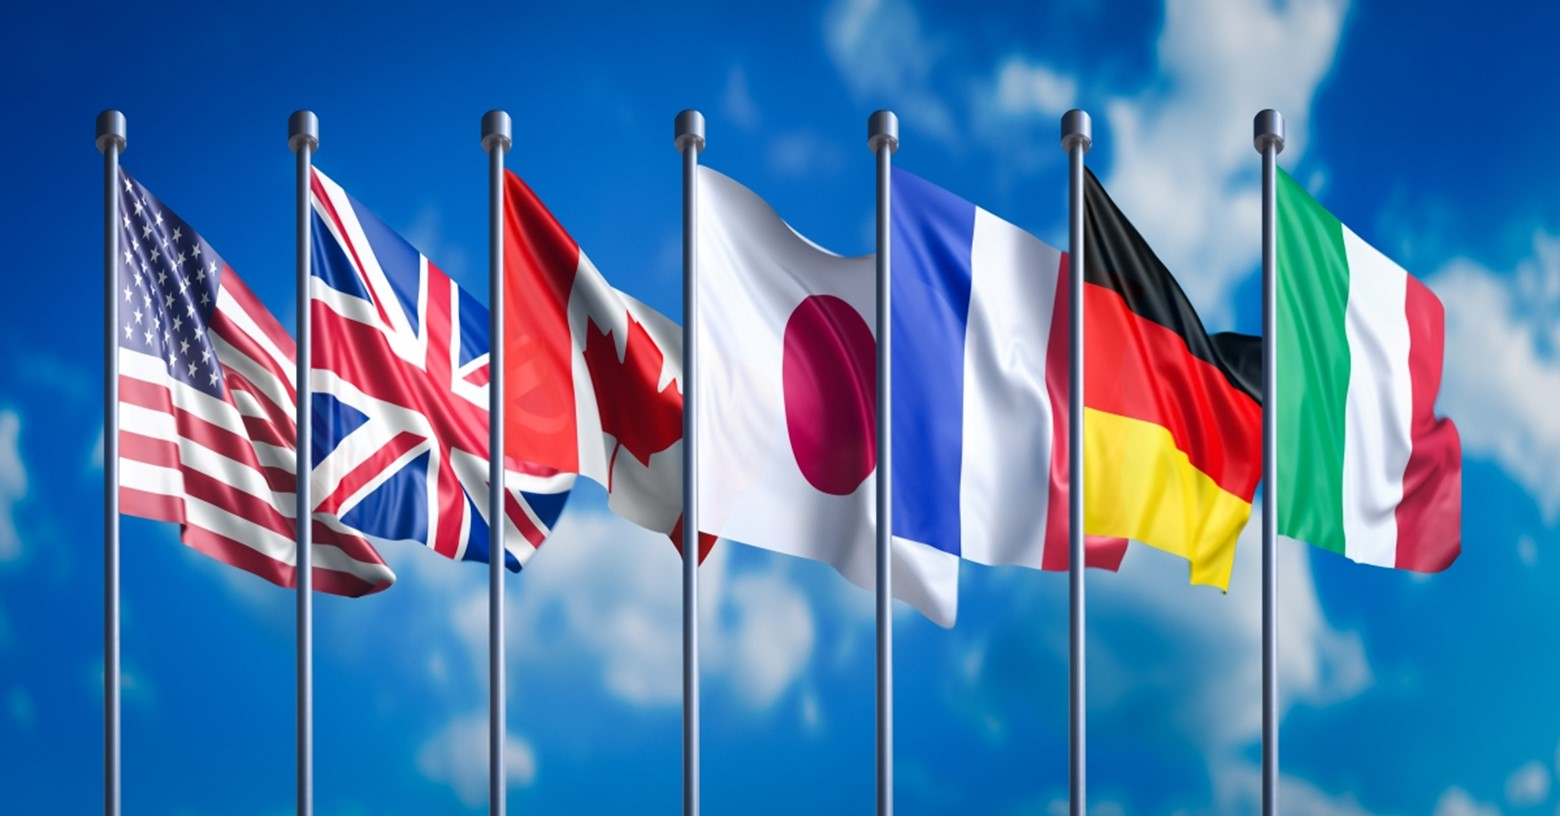 G7 countries' flags